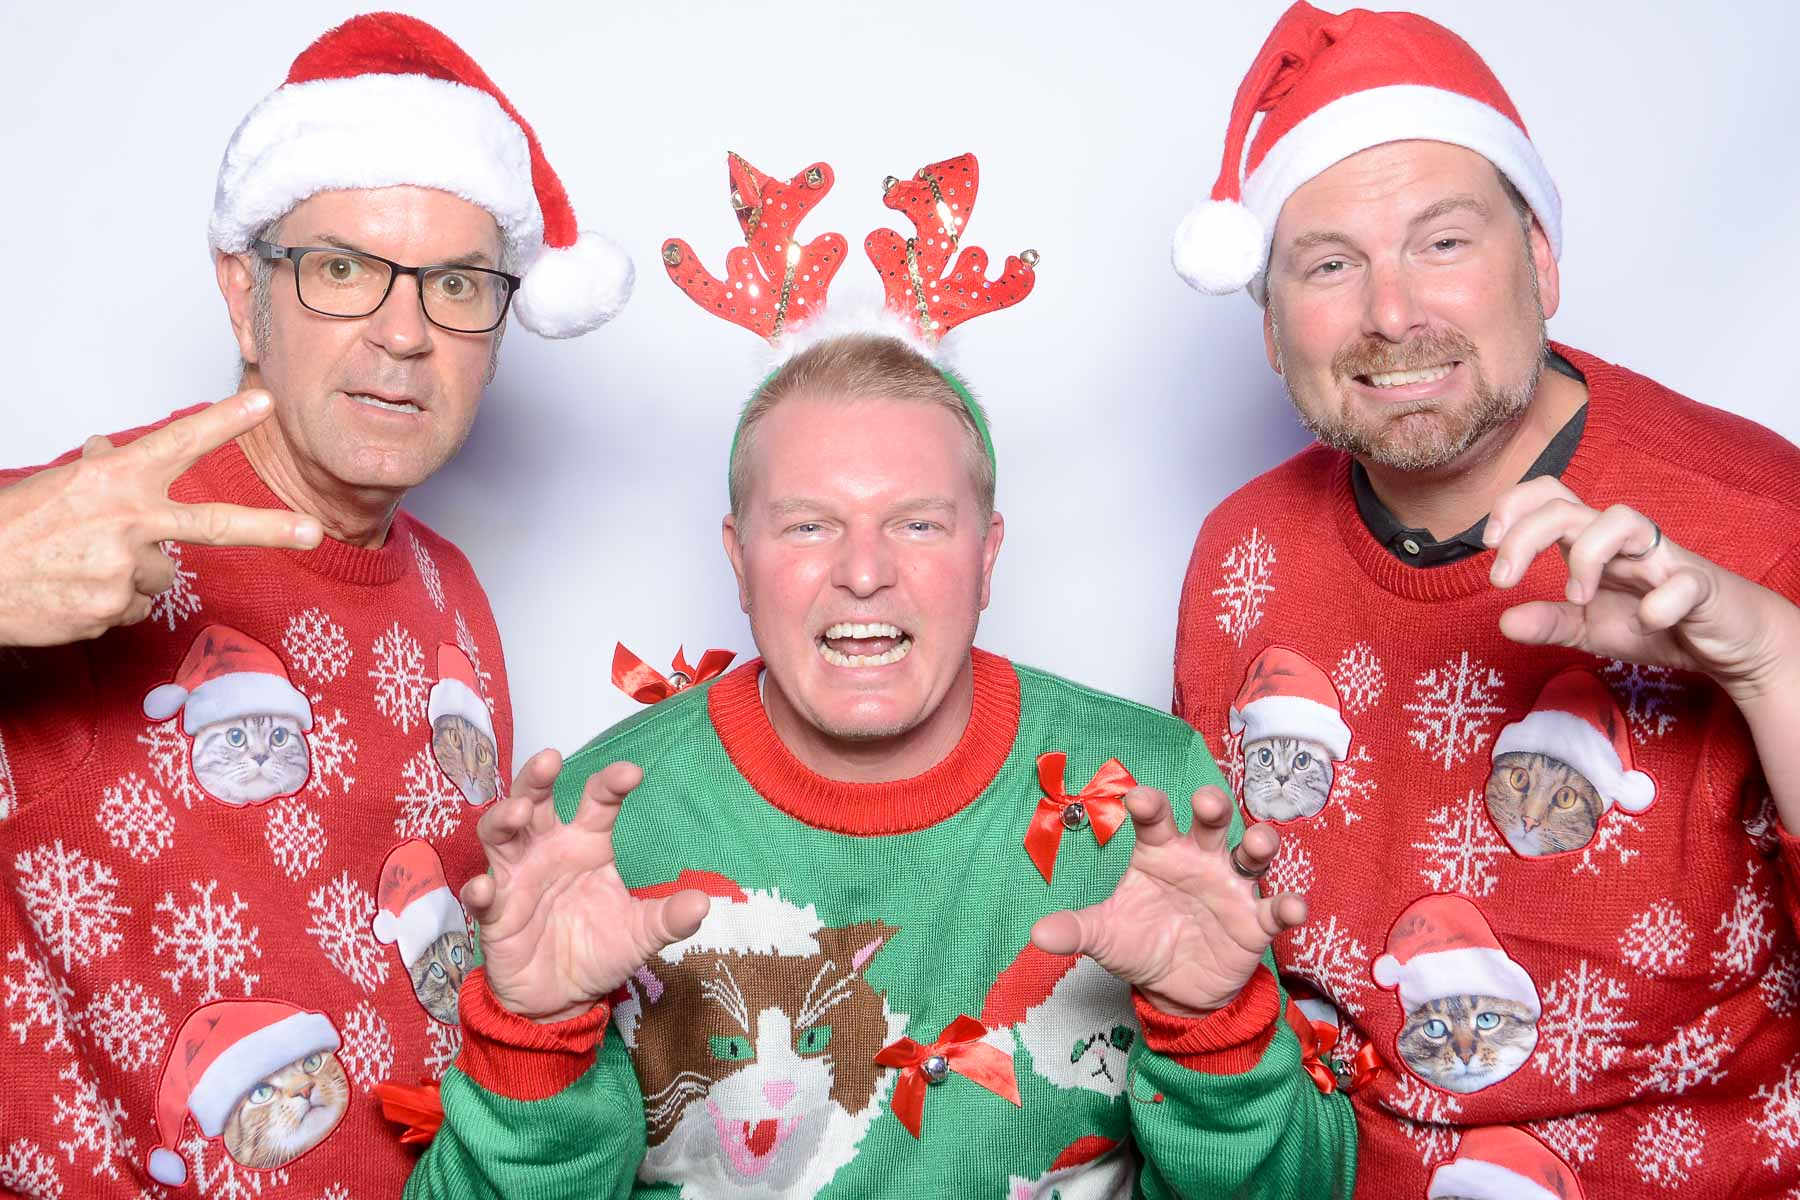 White Buffalo photo booth ugly sweater competition